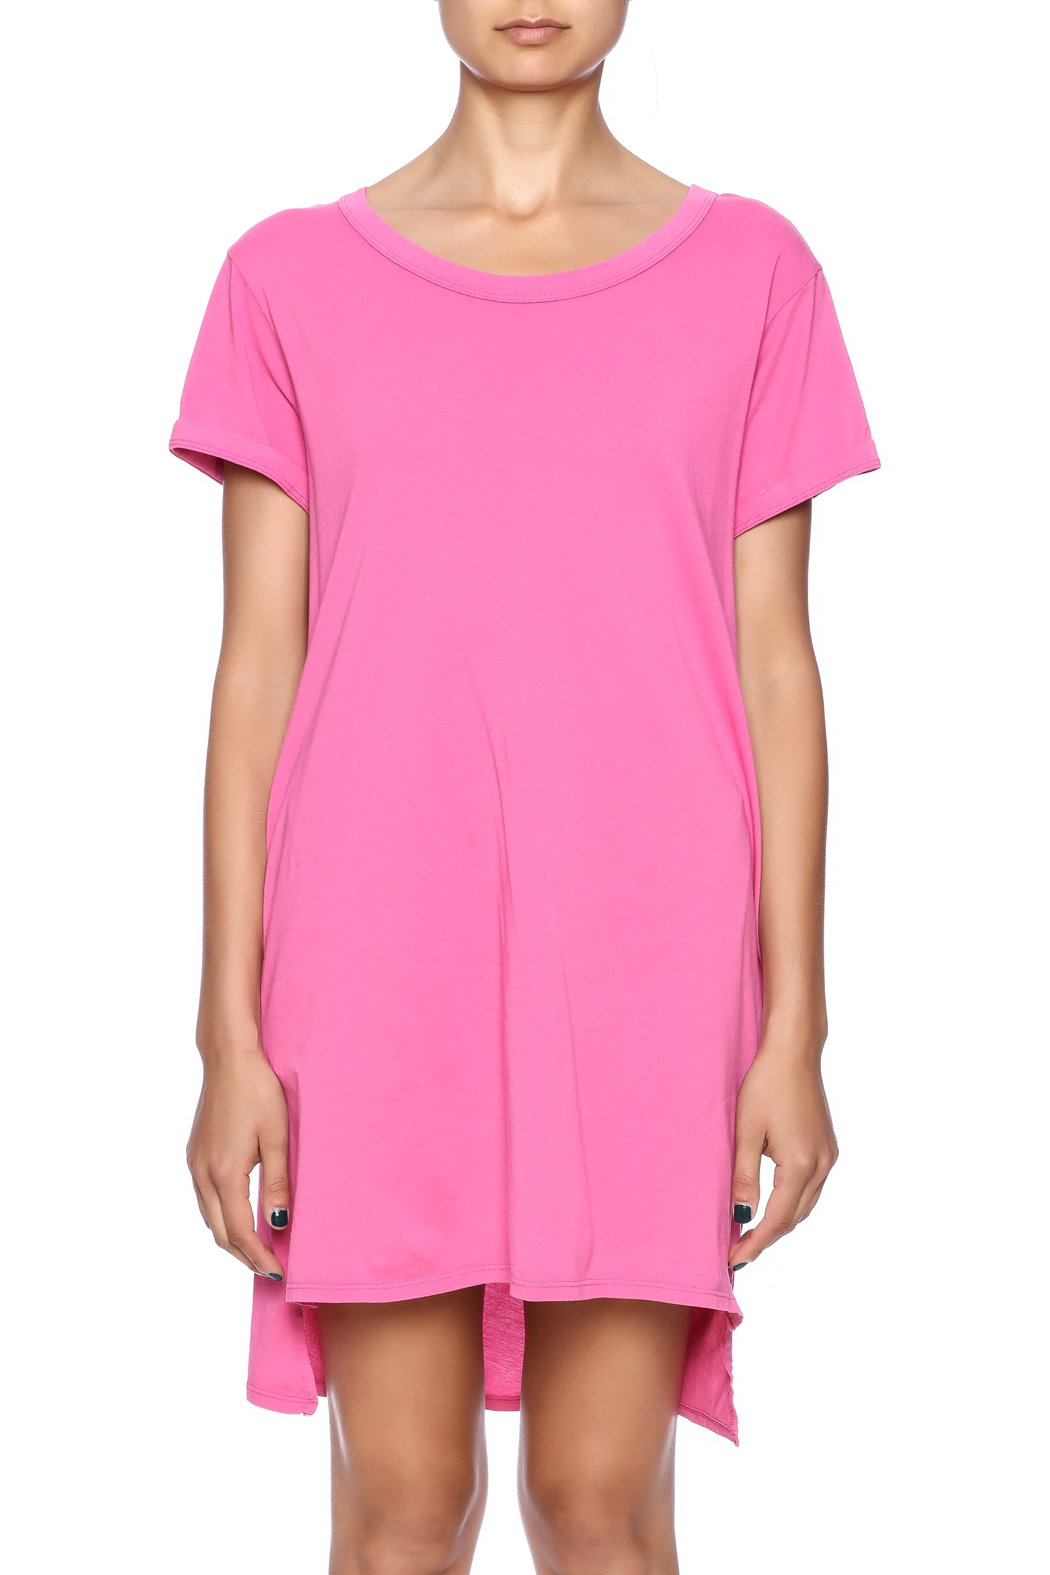 Groceries Apparel Sally Tee Dress - Side Cropped Image